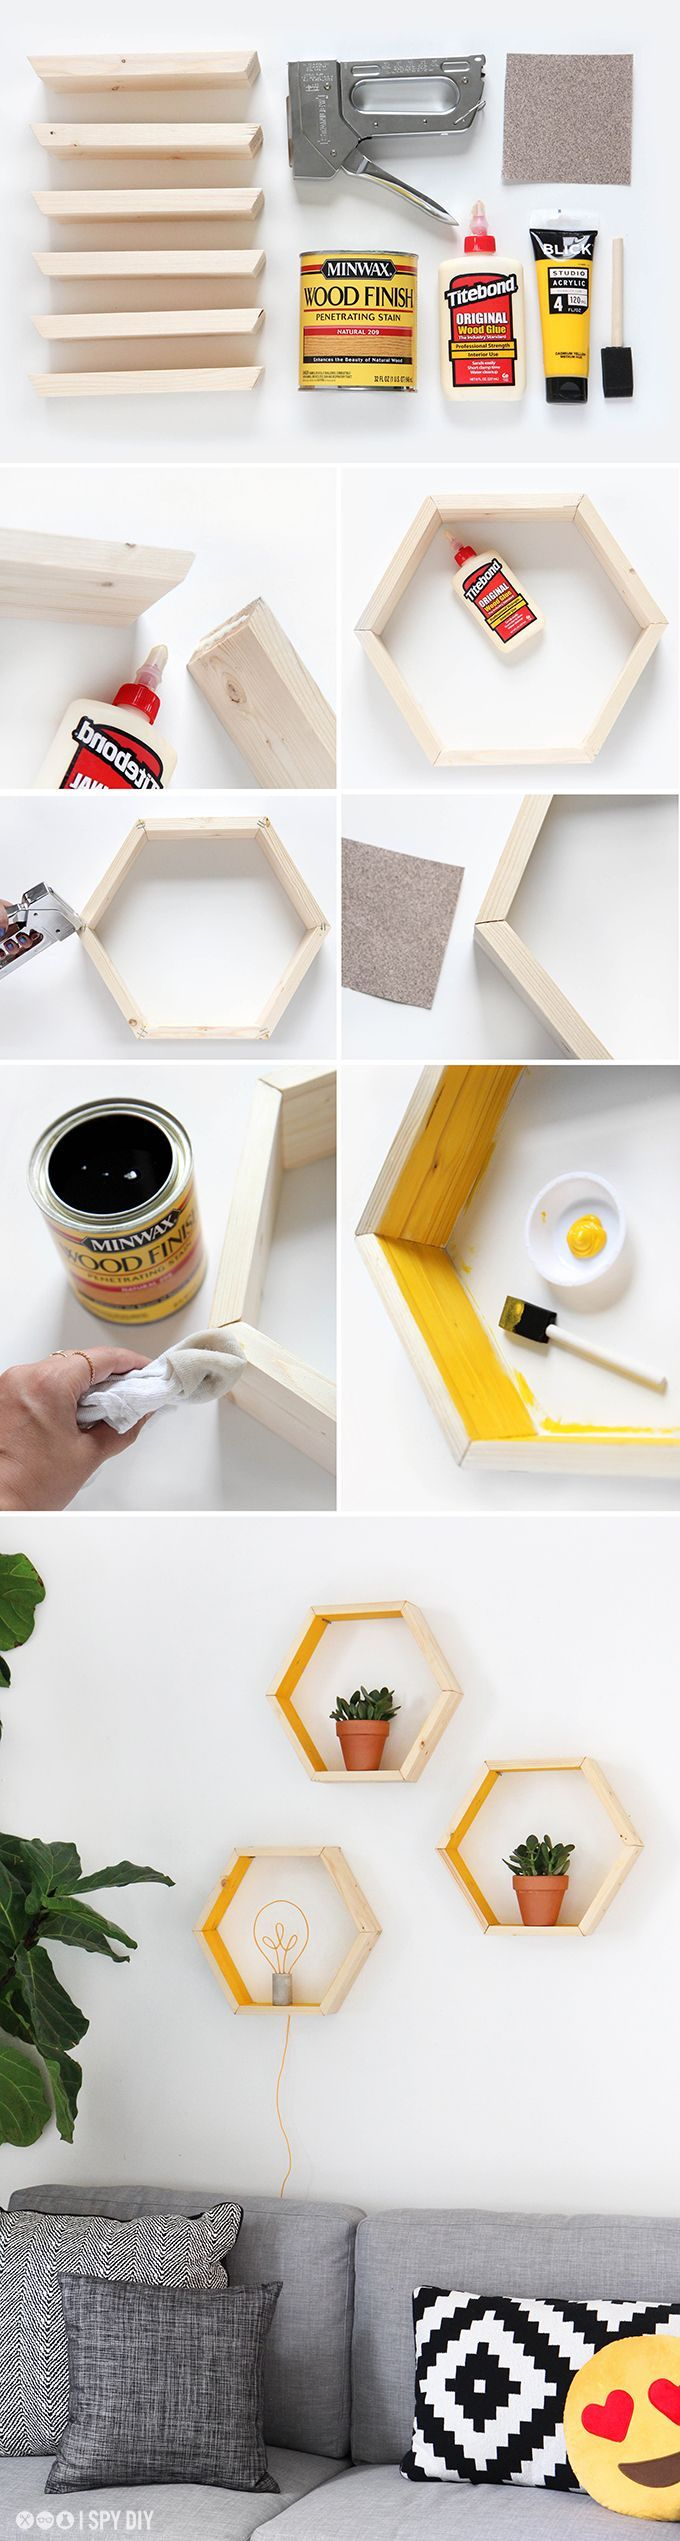 Inspiring DIY Projects & Tutorials: MY DIY | Hexagon Shape Shelves